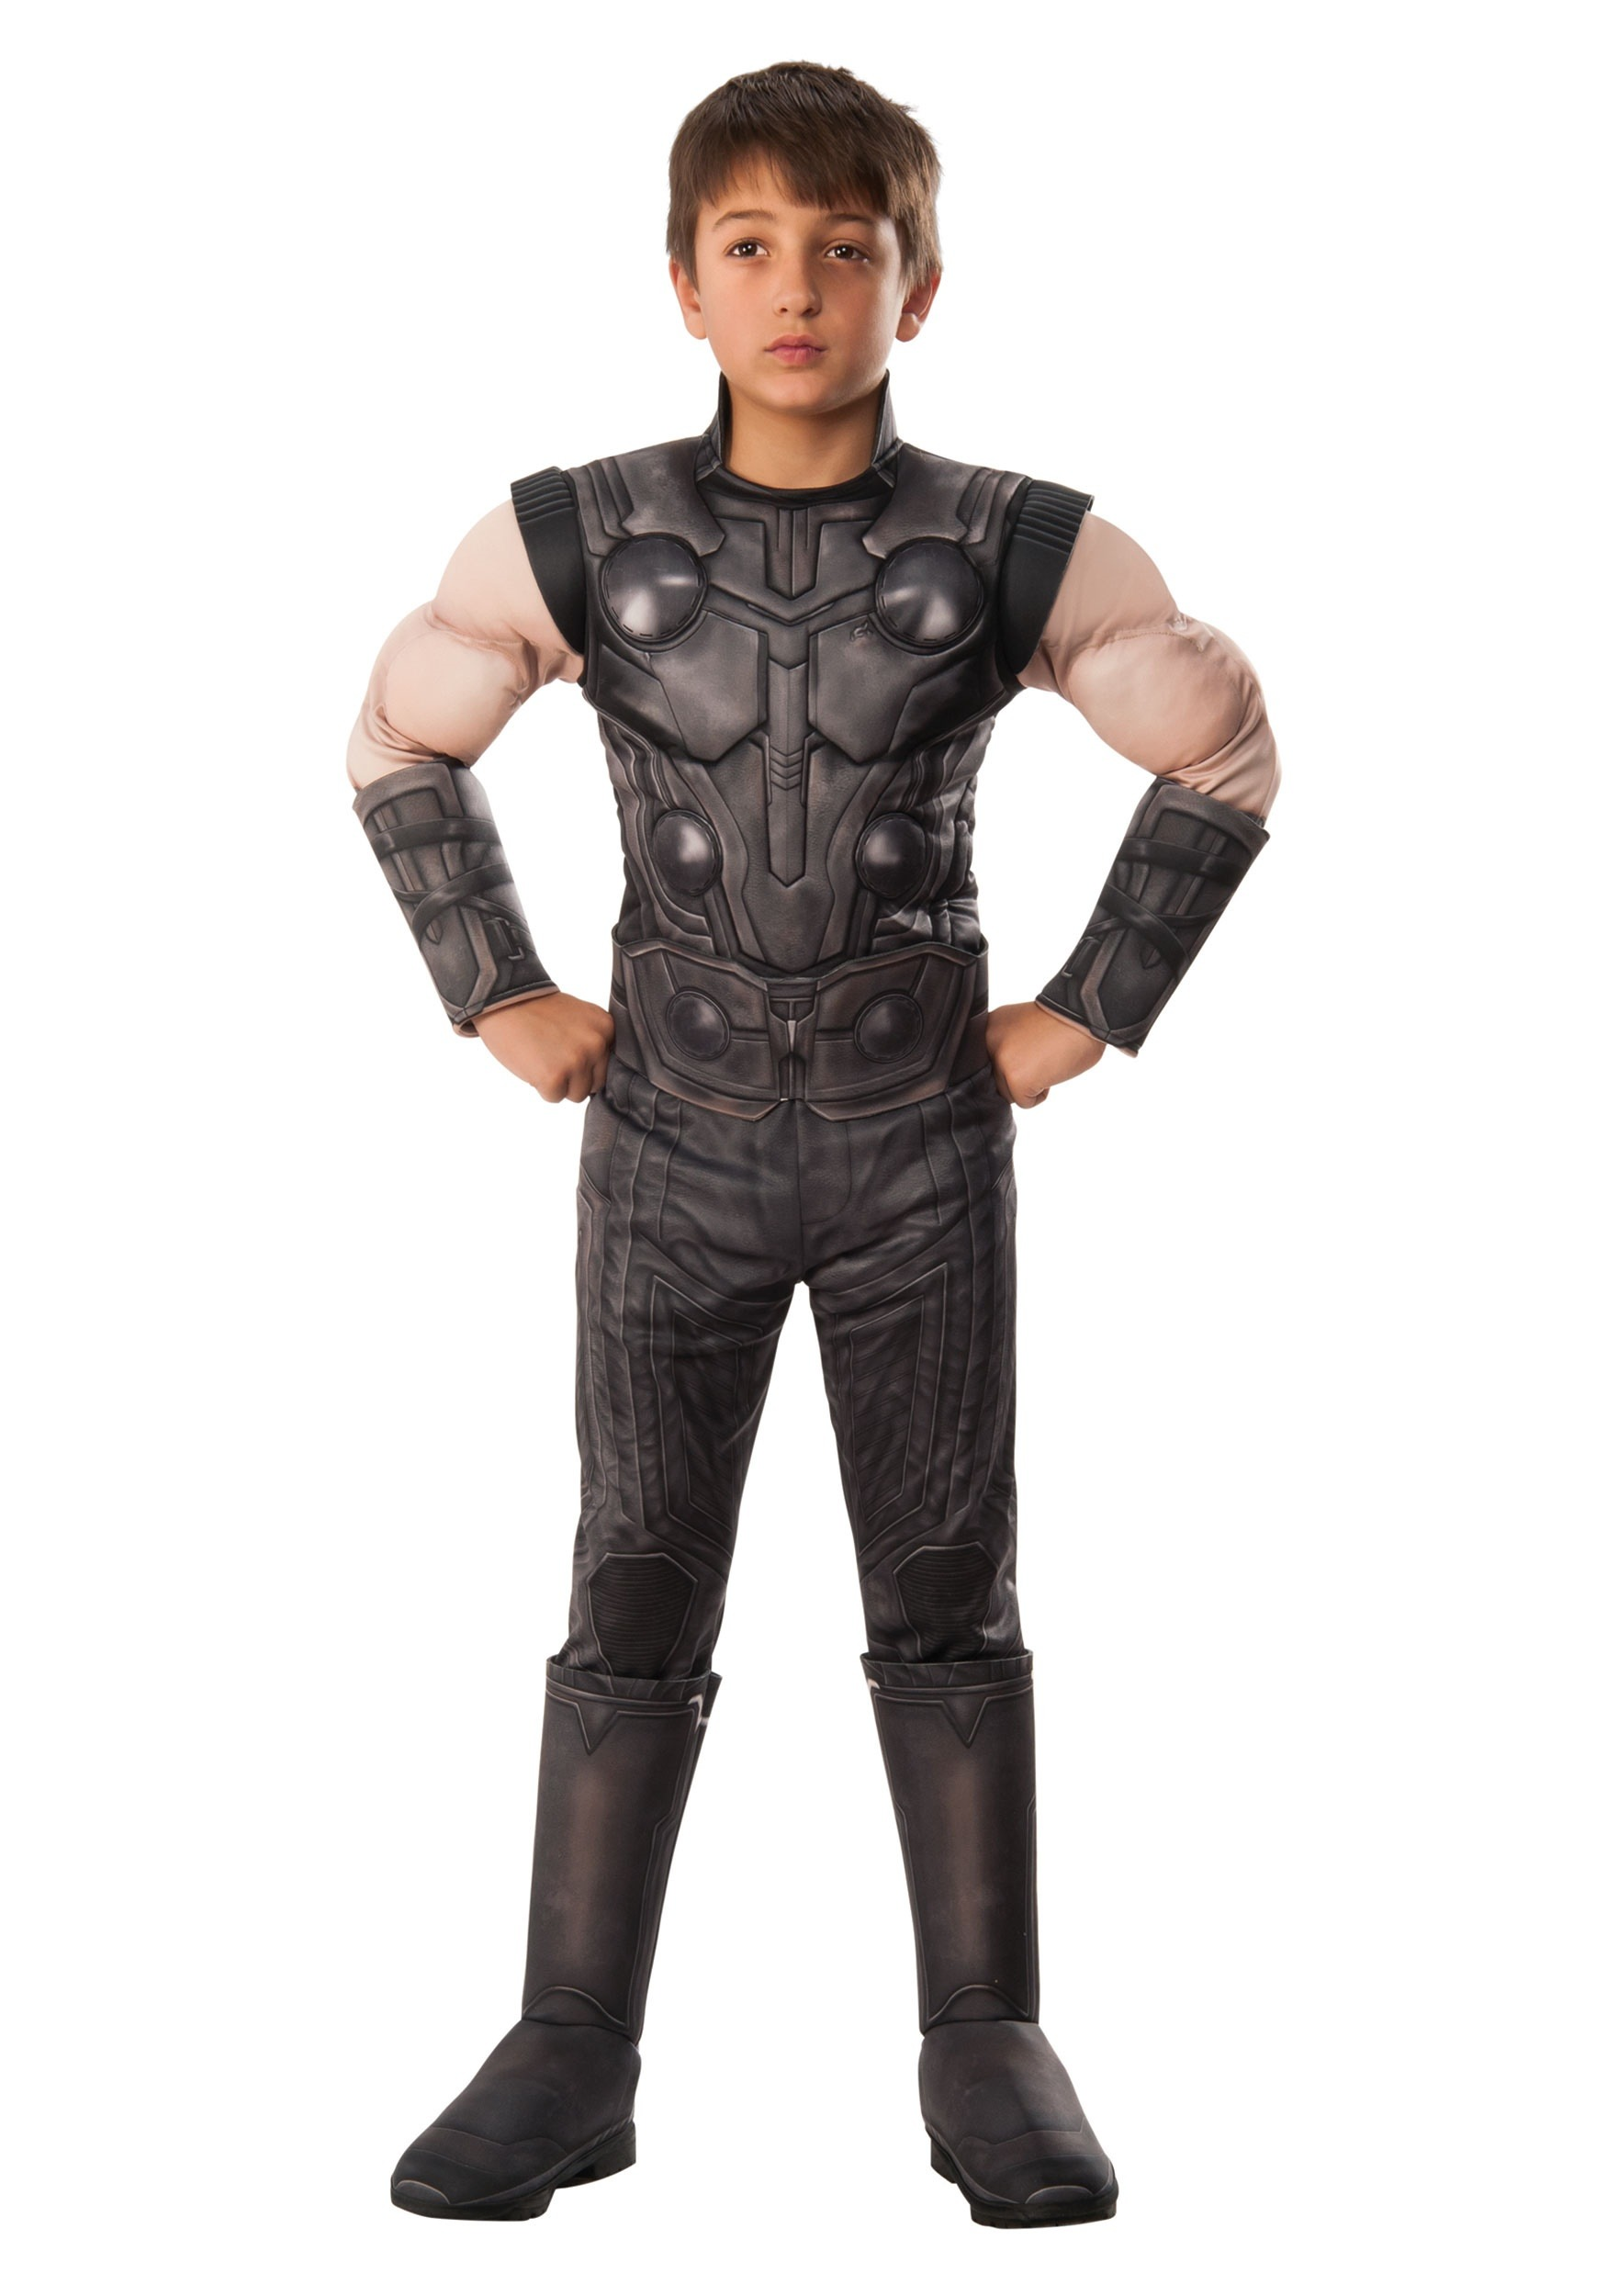 Marvel Infinity War Deluxe Thor Costume for a Child